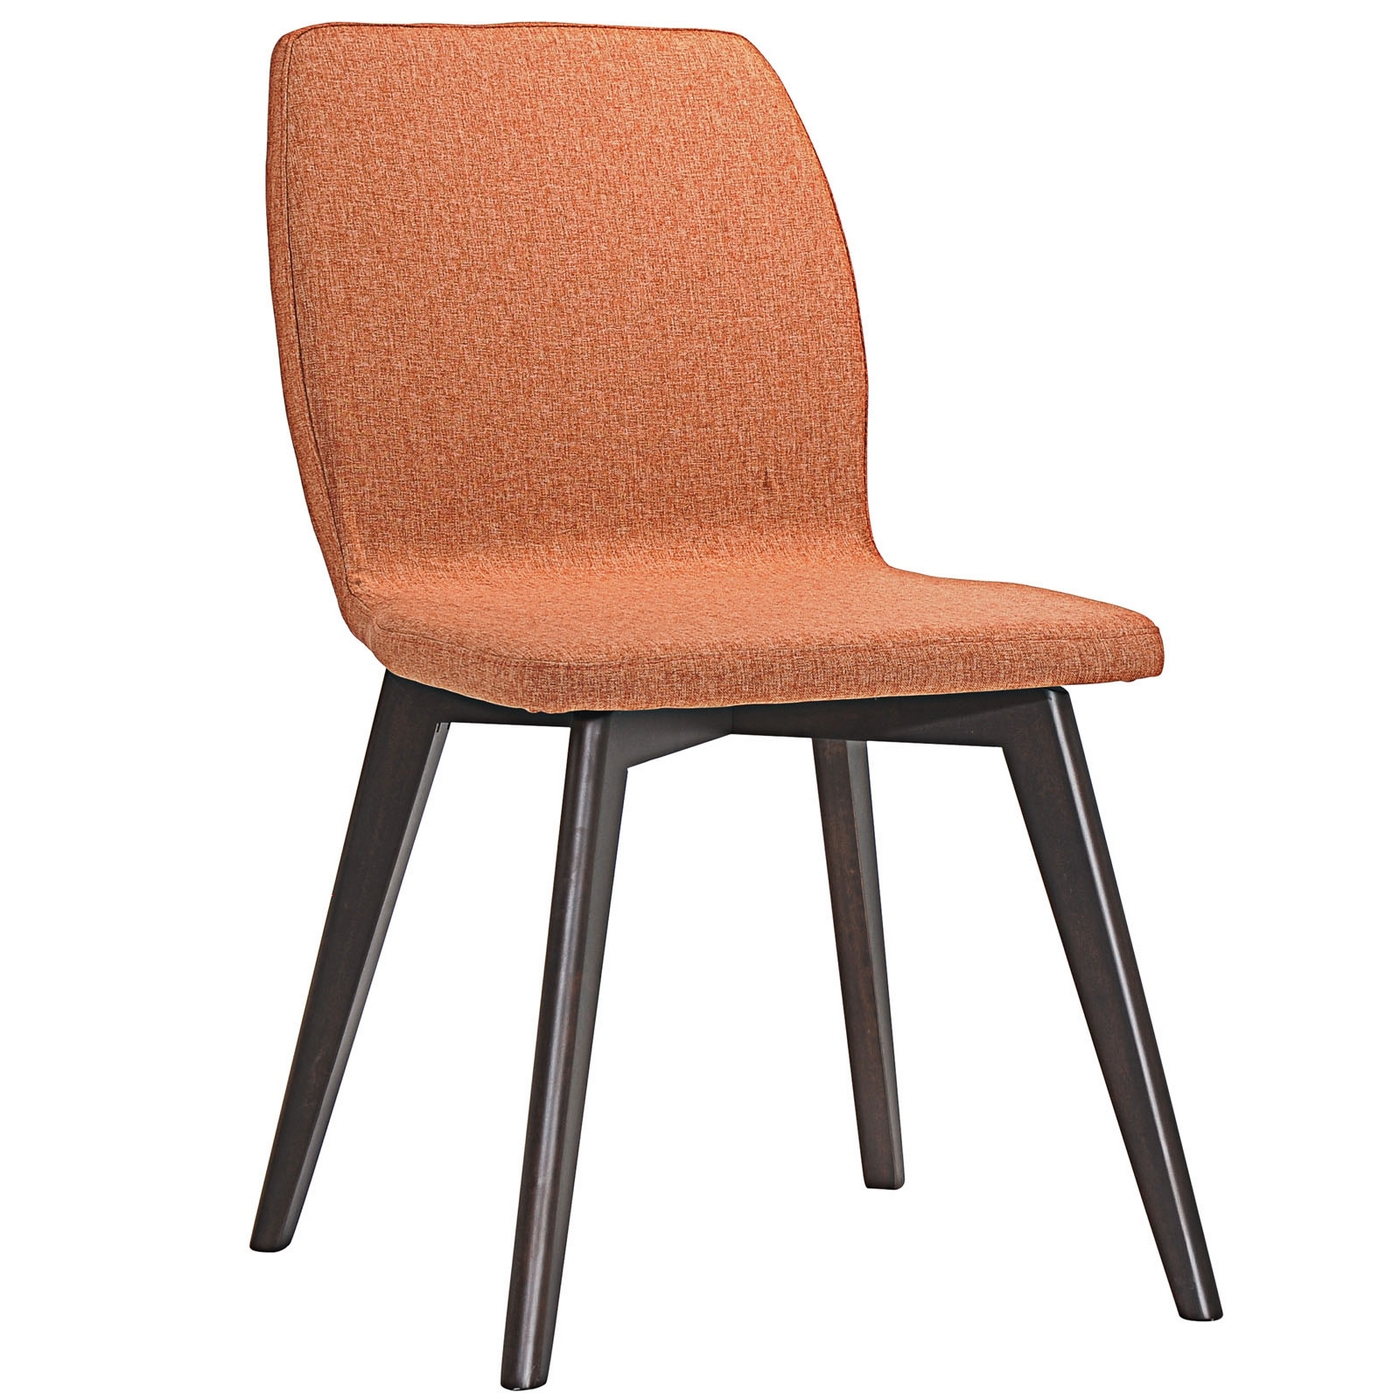 Proclaim modern upholstered wooden dining side chair for Upholstered dining chairs contemporary